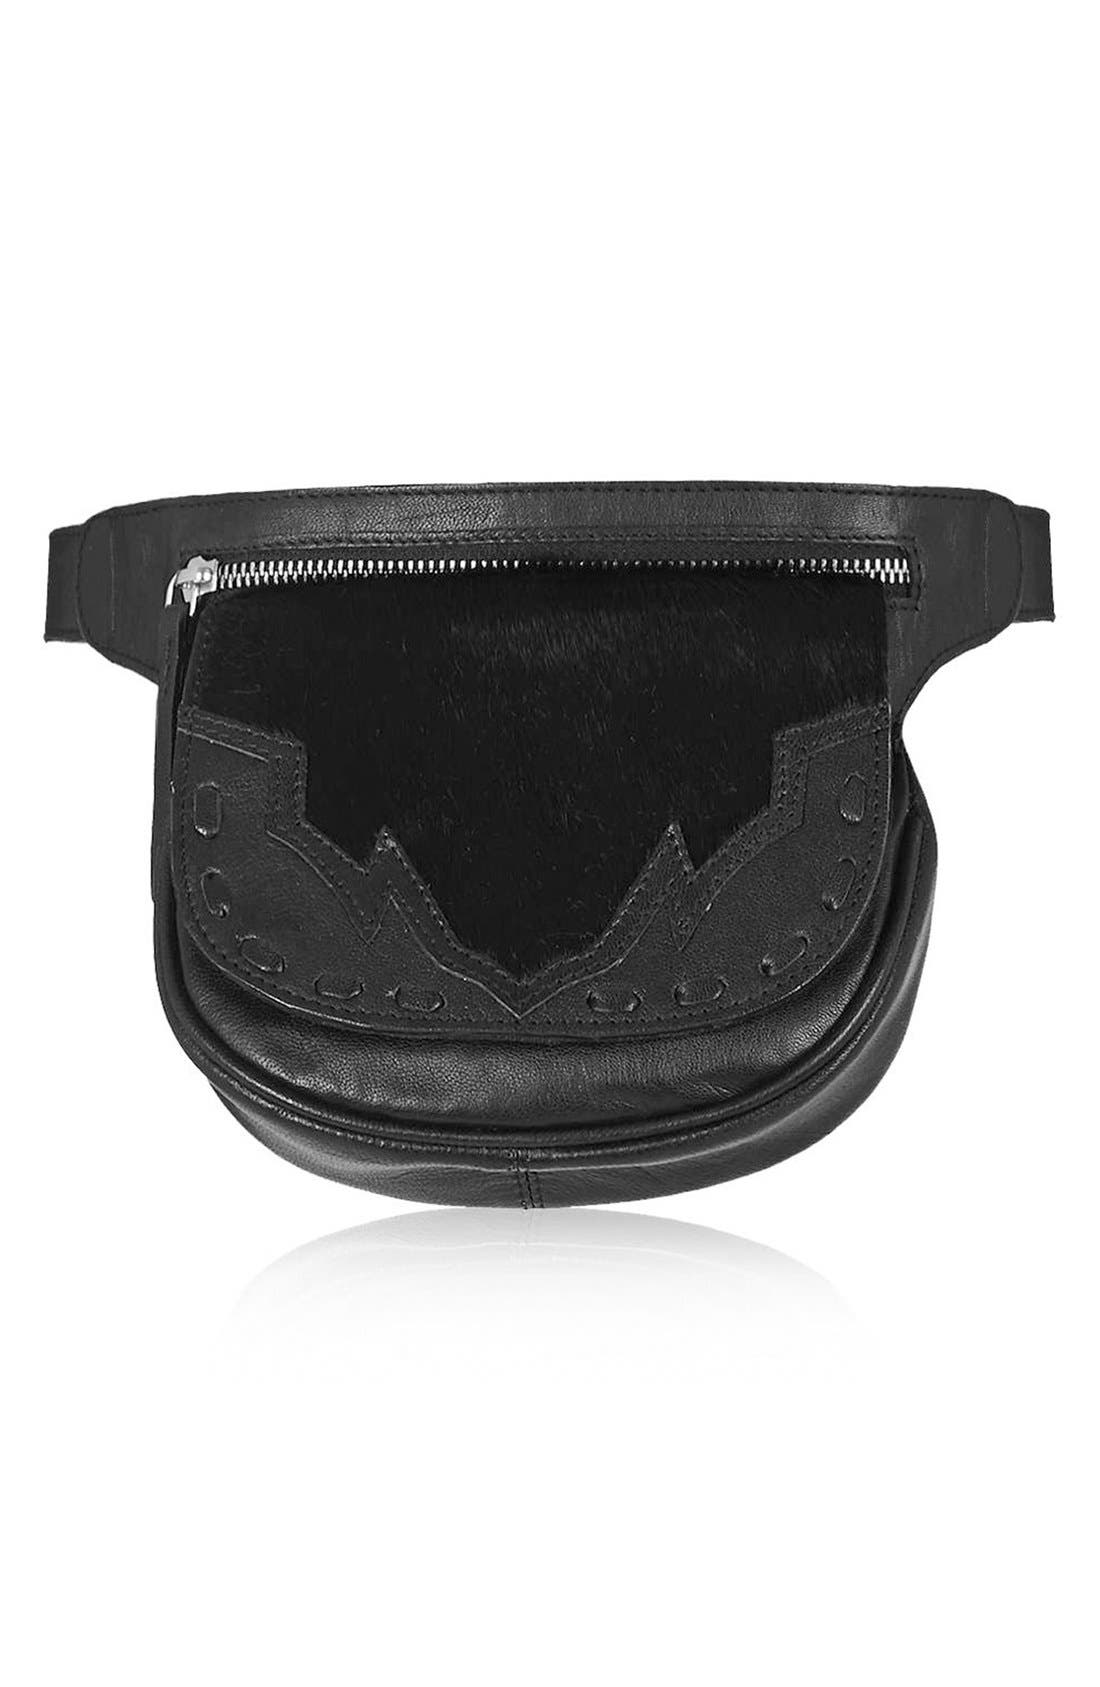 Alternate Image 1 Selected - Topshop Western Leather & Calf Hair Belt Bag